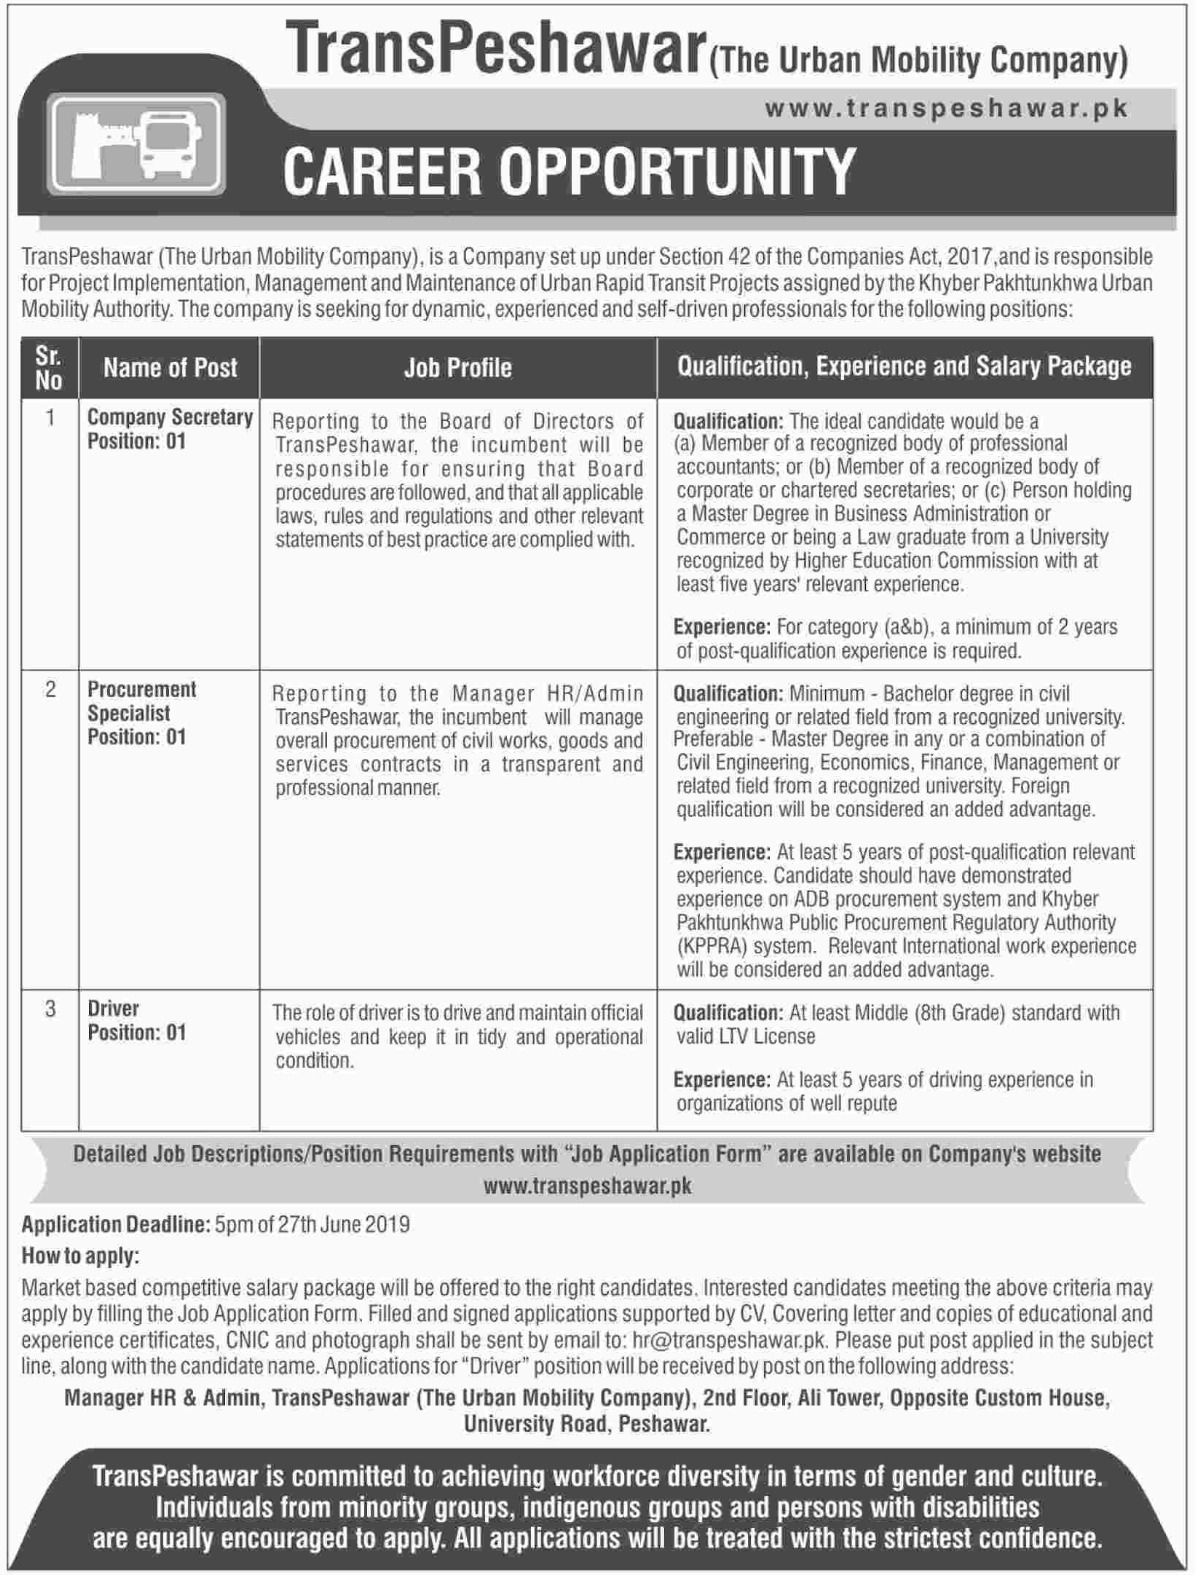 TransPeshawar Jobs 2019 The Urban Mobility Company